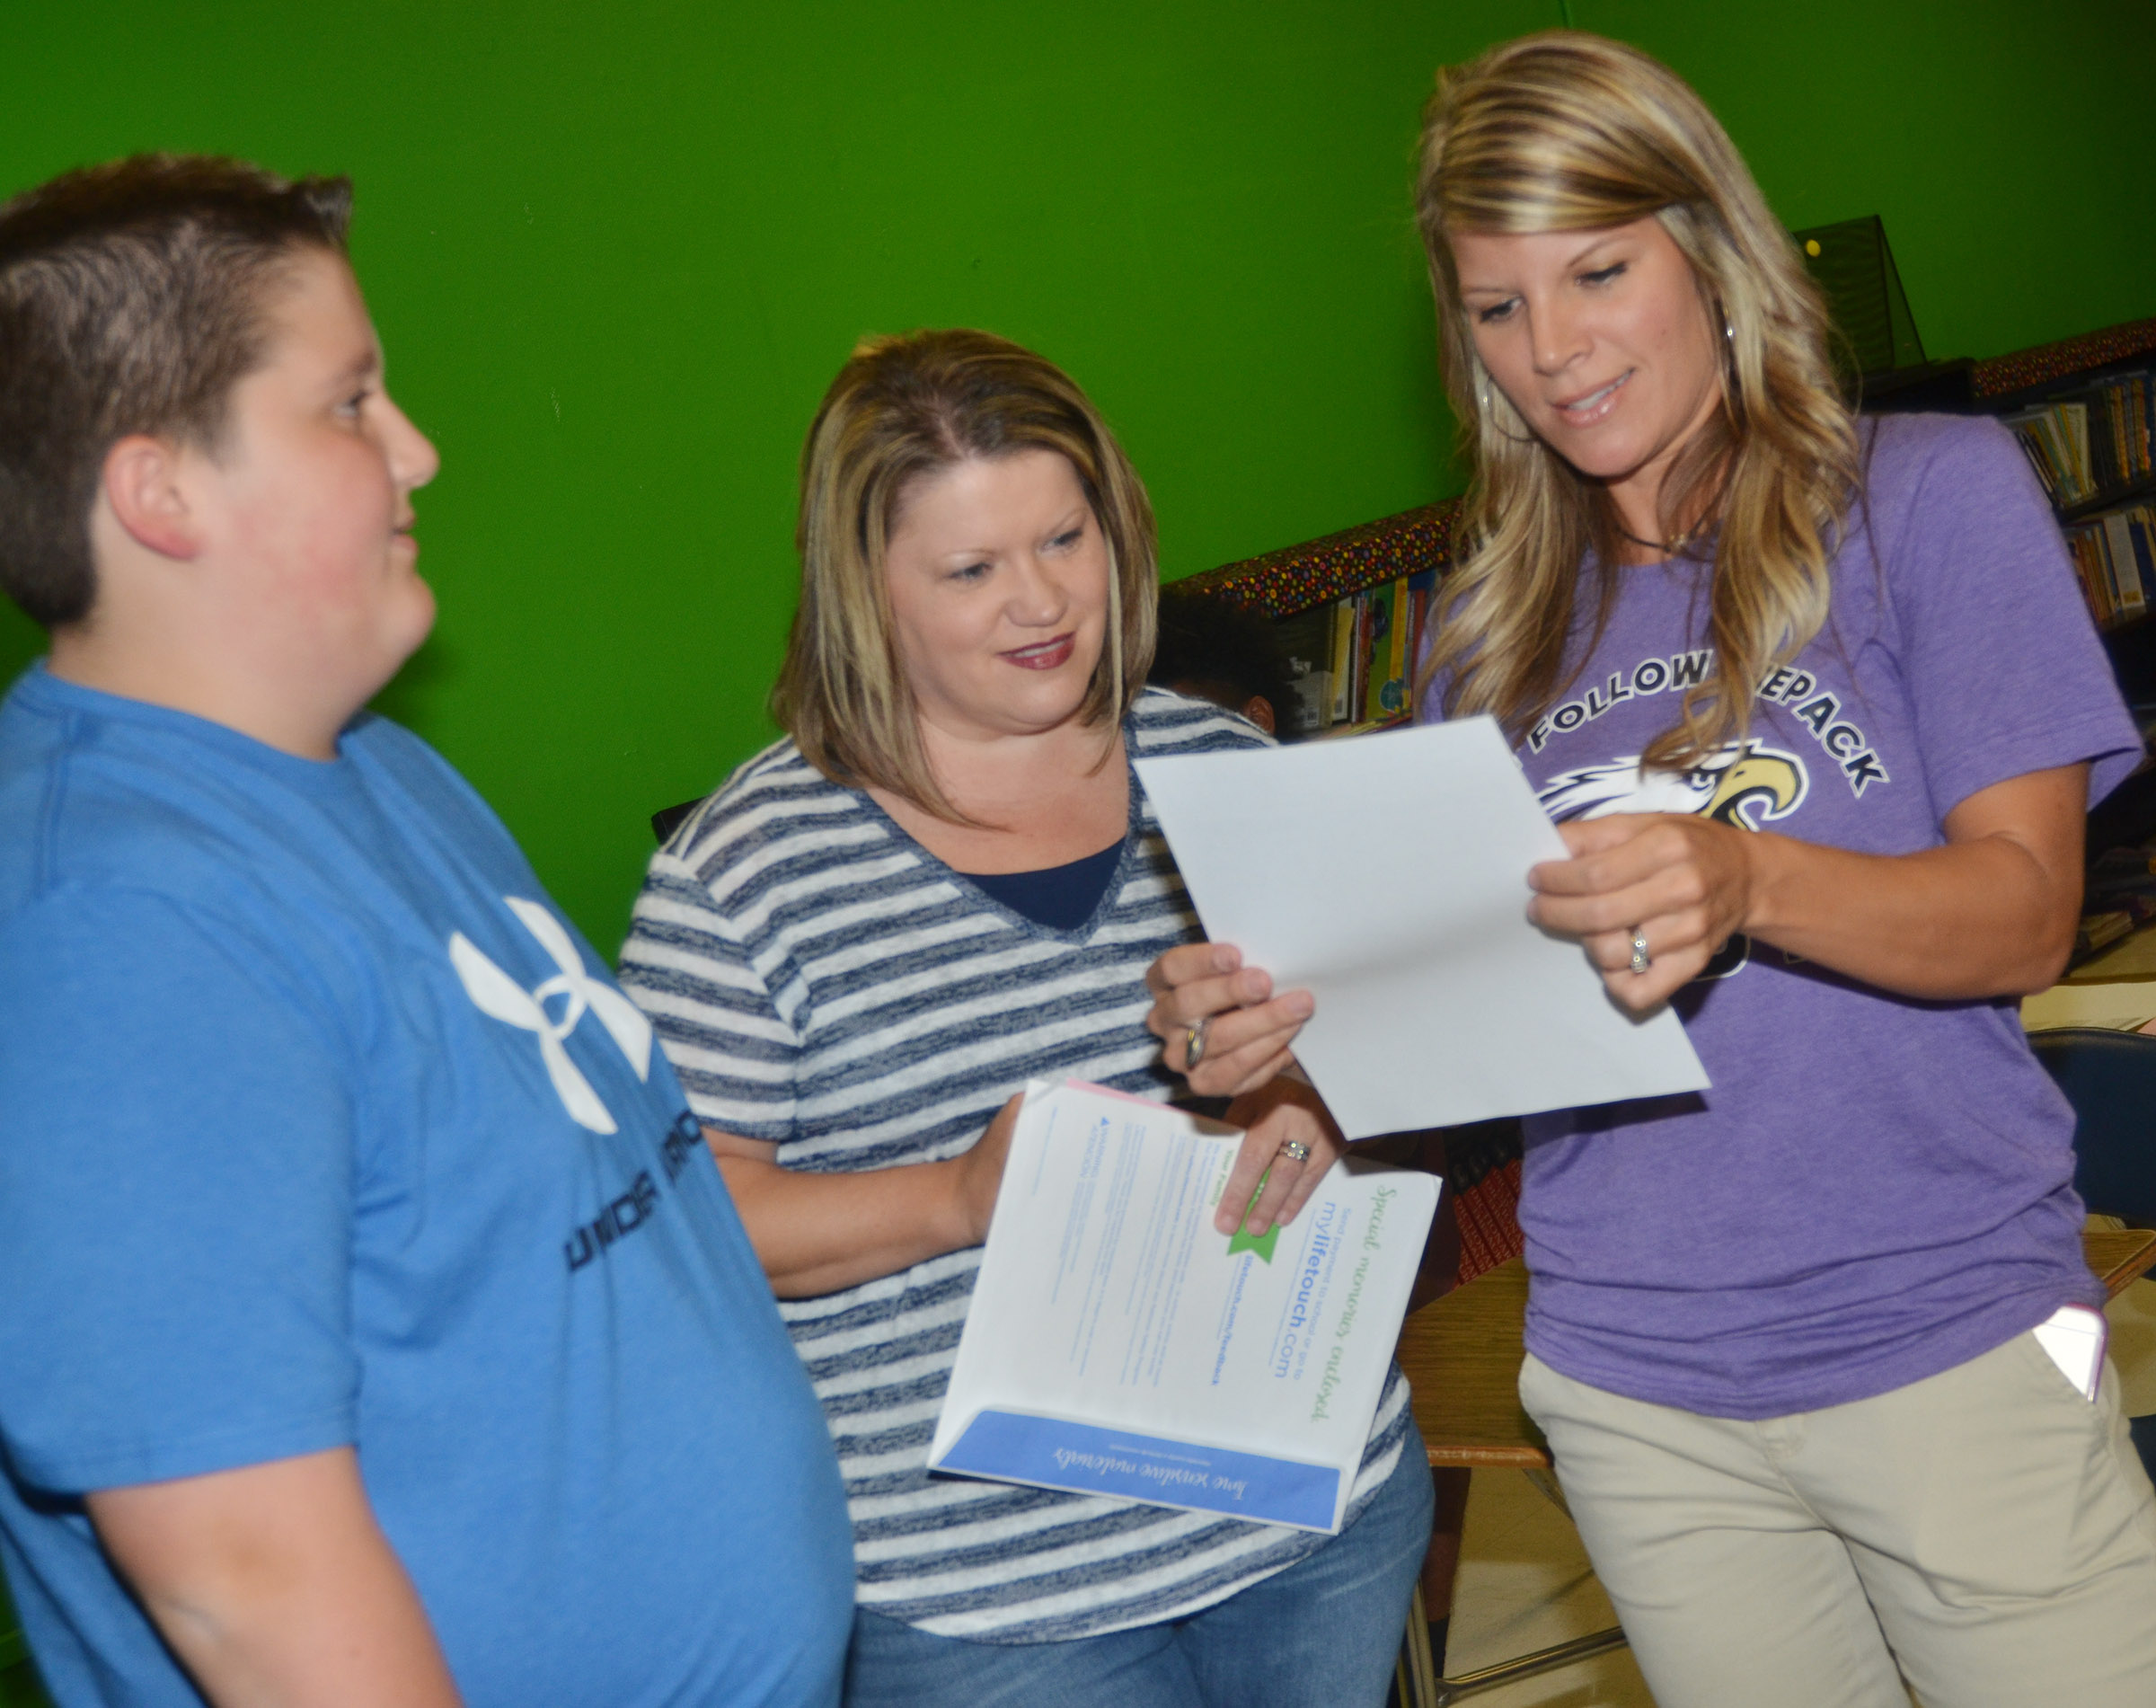 CMS teacher Andrea Gribbins looks over Luke McDonald's schedule with his mother Stephanie.